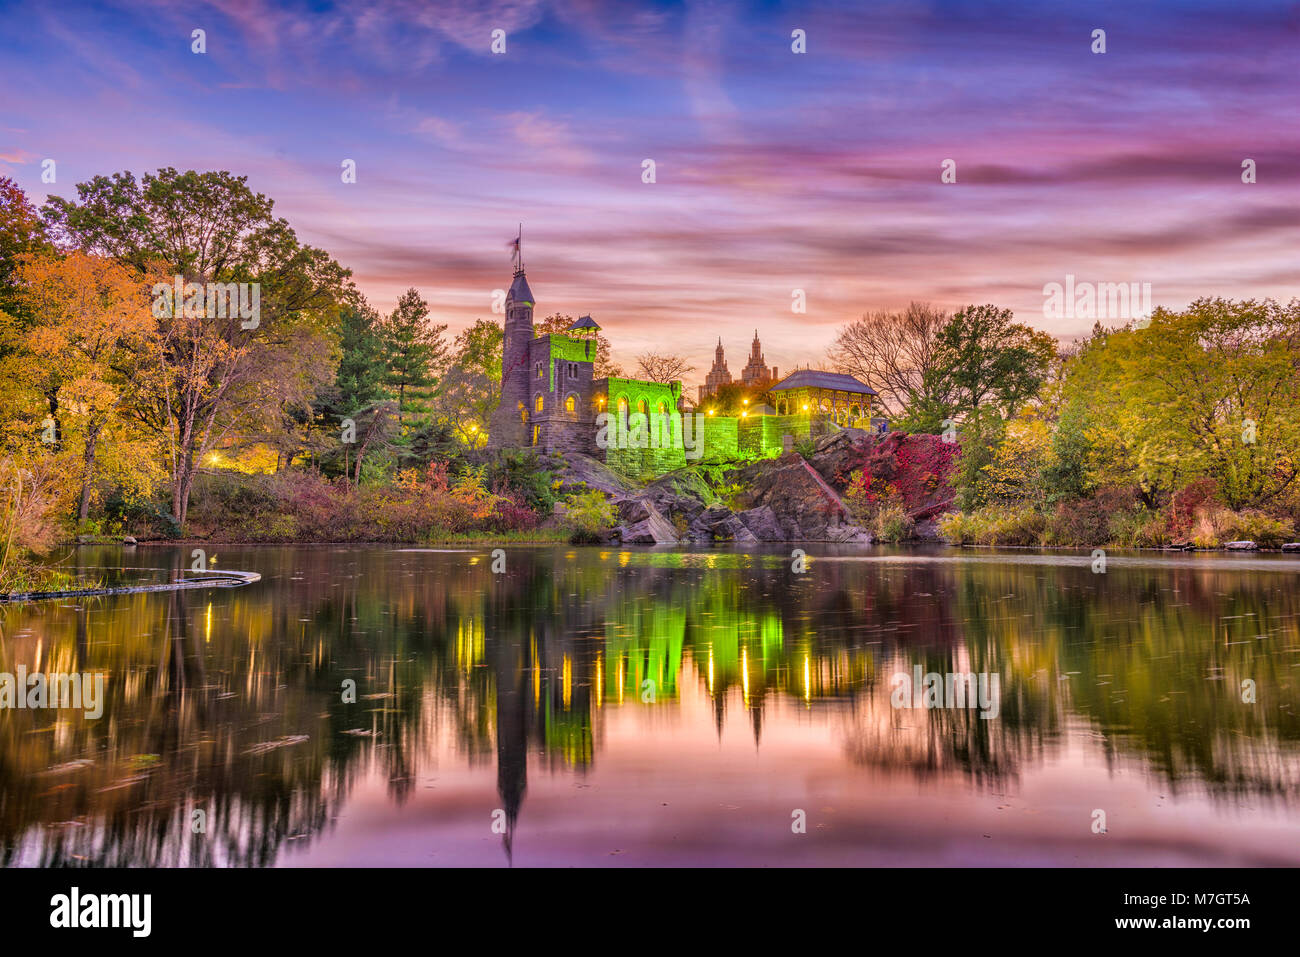 New York, New York at Central Park's castle and pond during an autumn dusk. - Stock Image